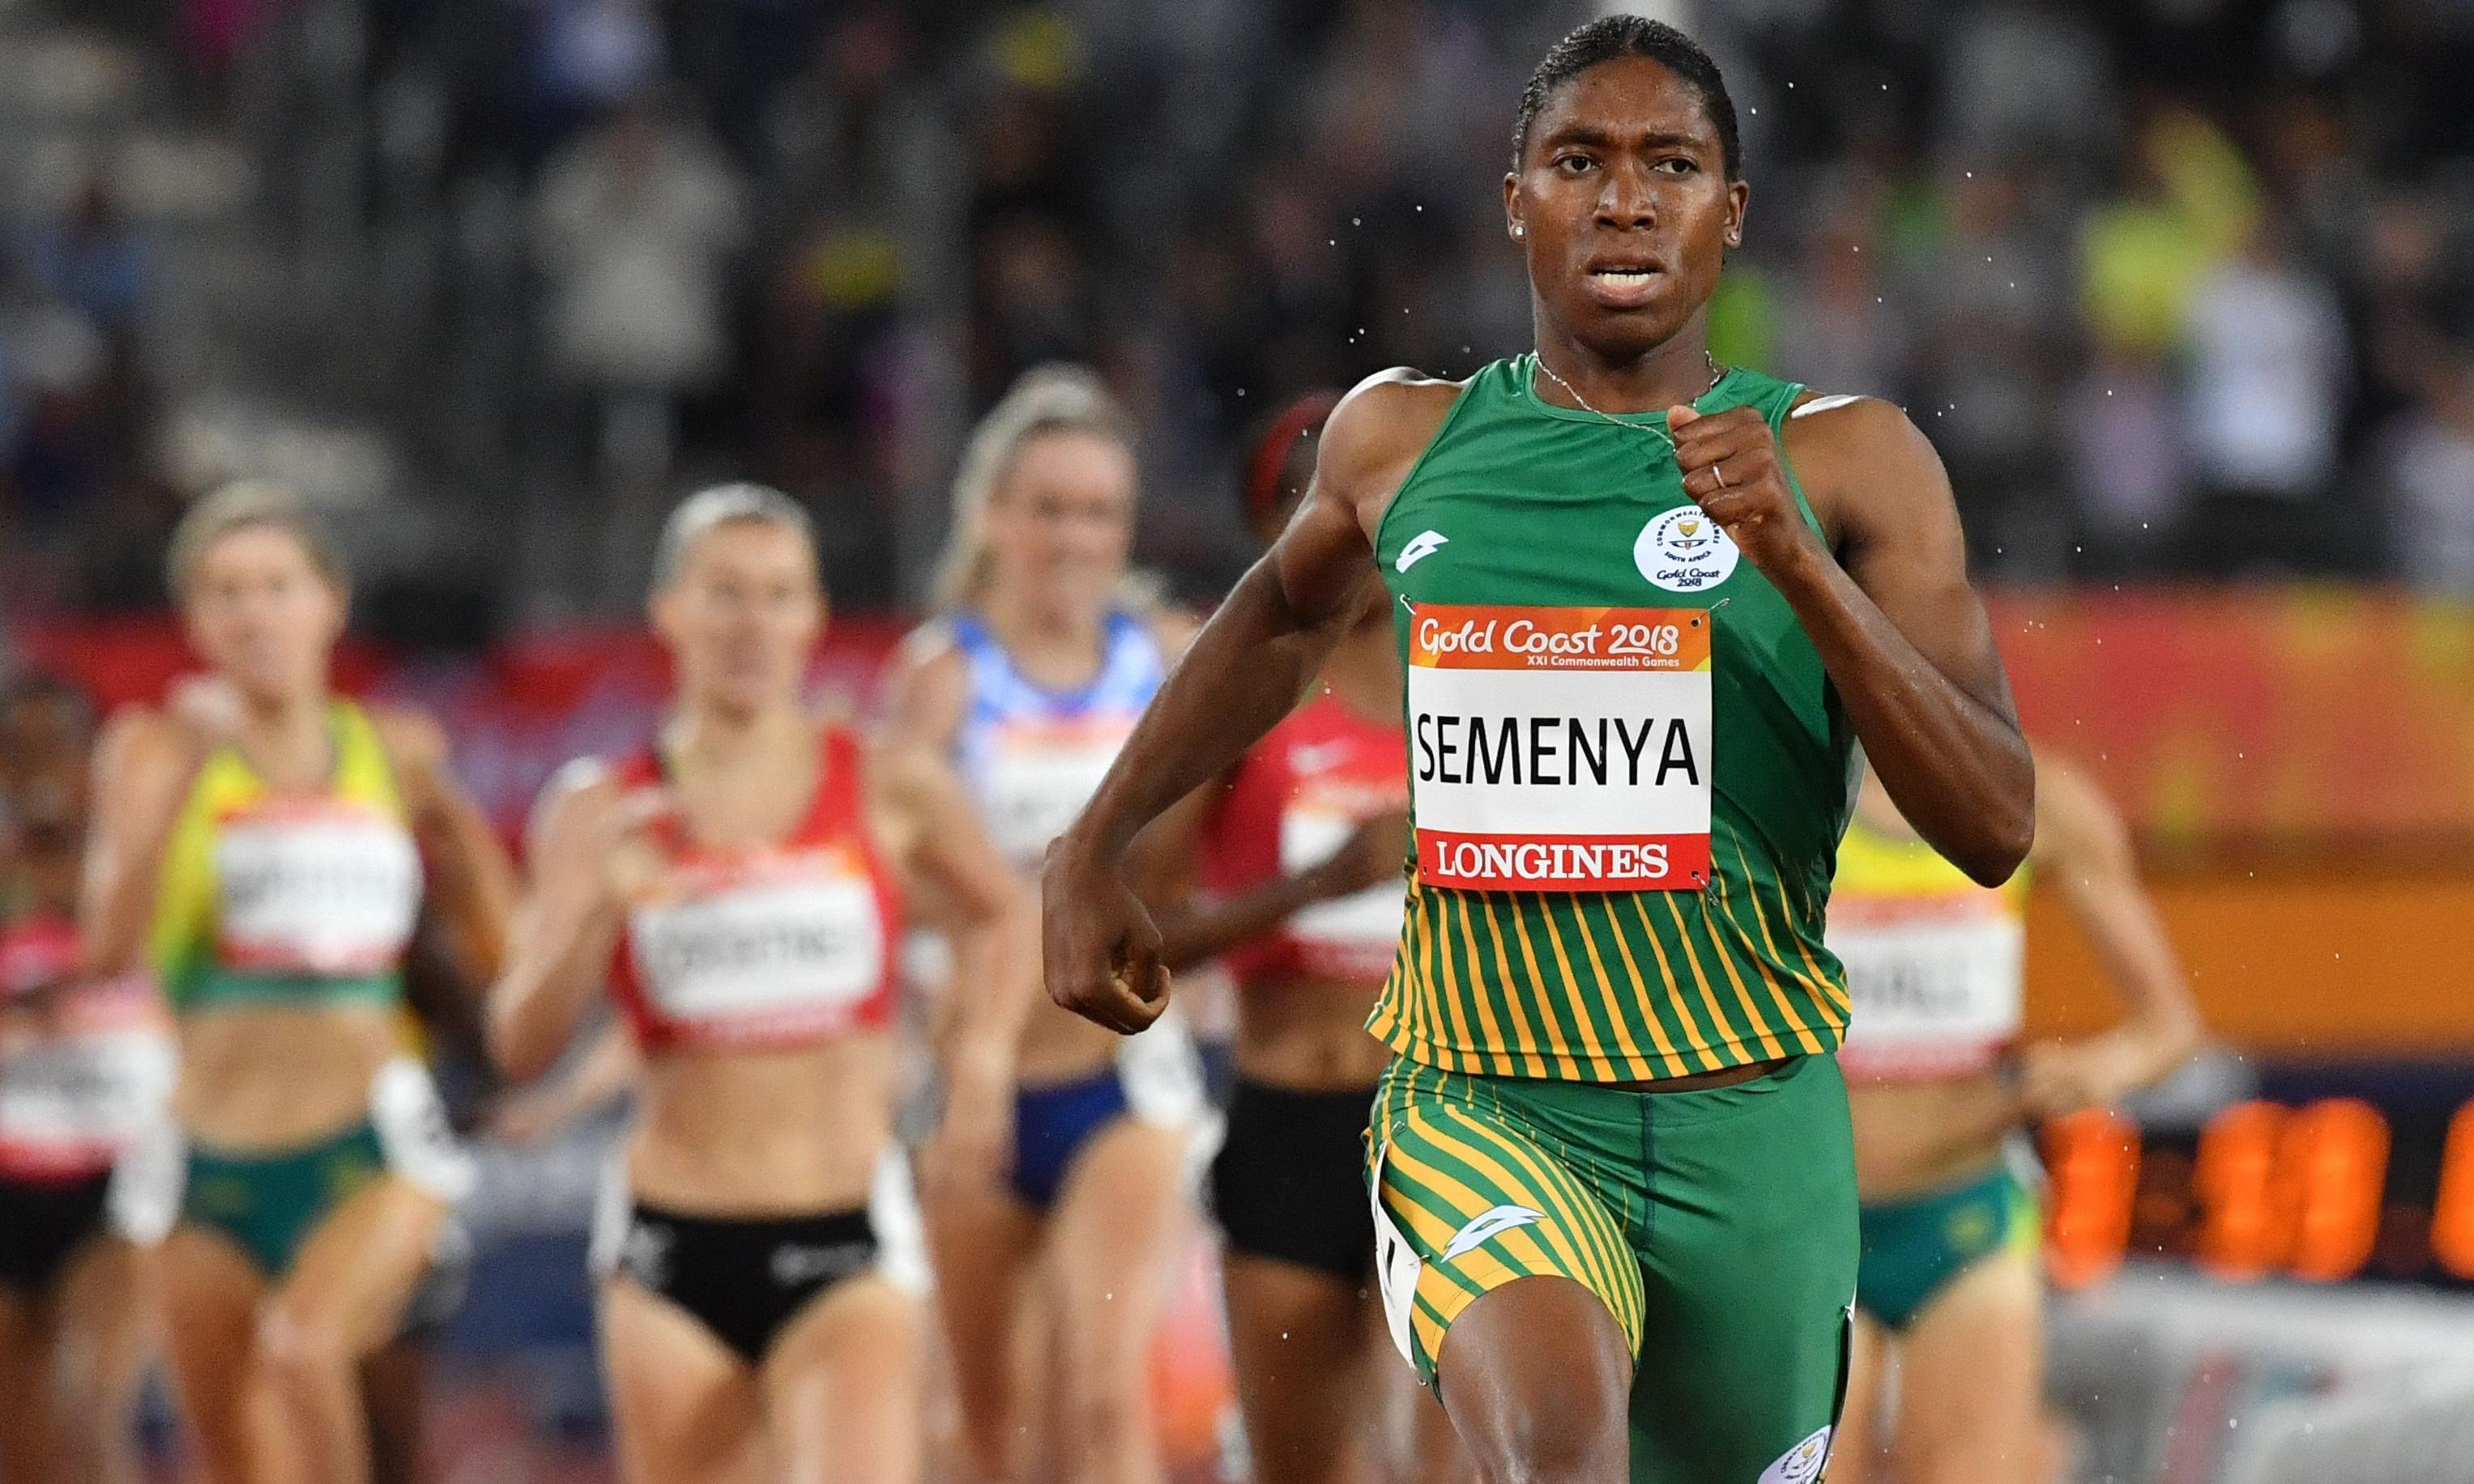 Proposed testosterone limit 'flawed' and 'hurtful', say Caster Semenya's lawyers